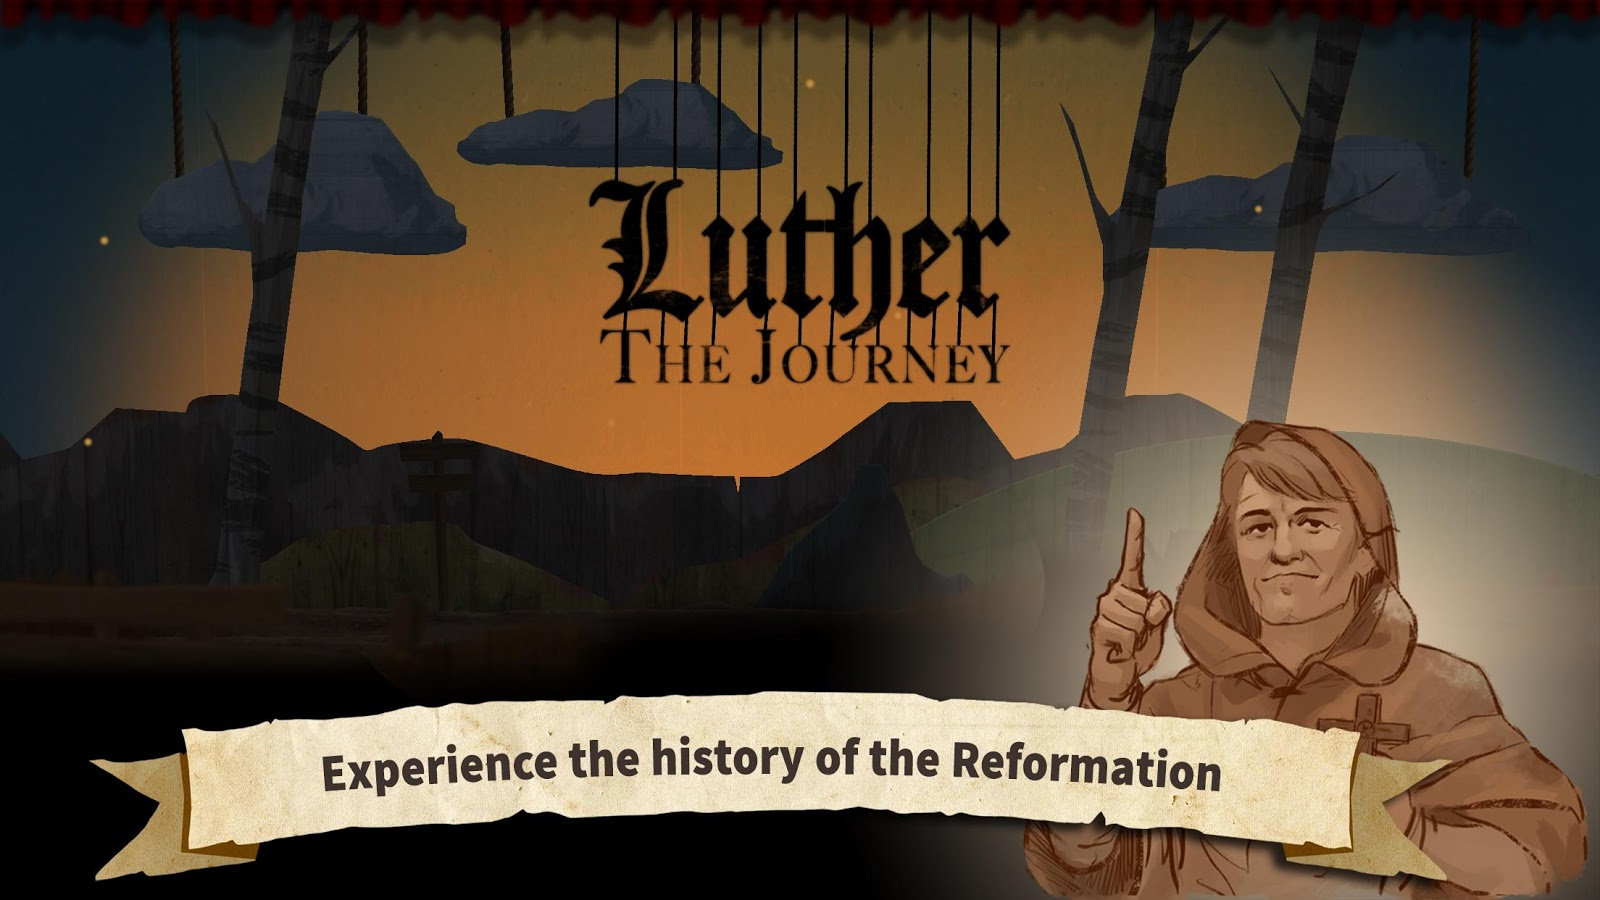 Luther - the Journey: An adventurous escape Screenshot